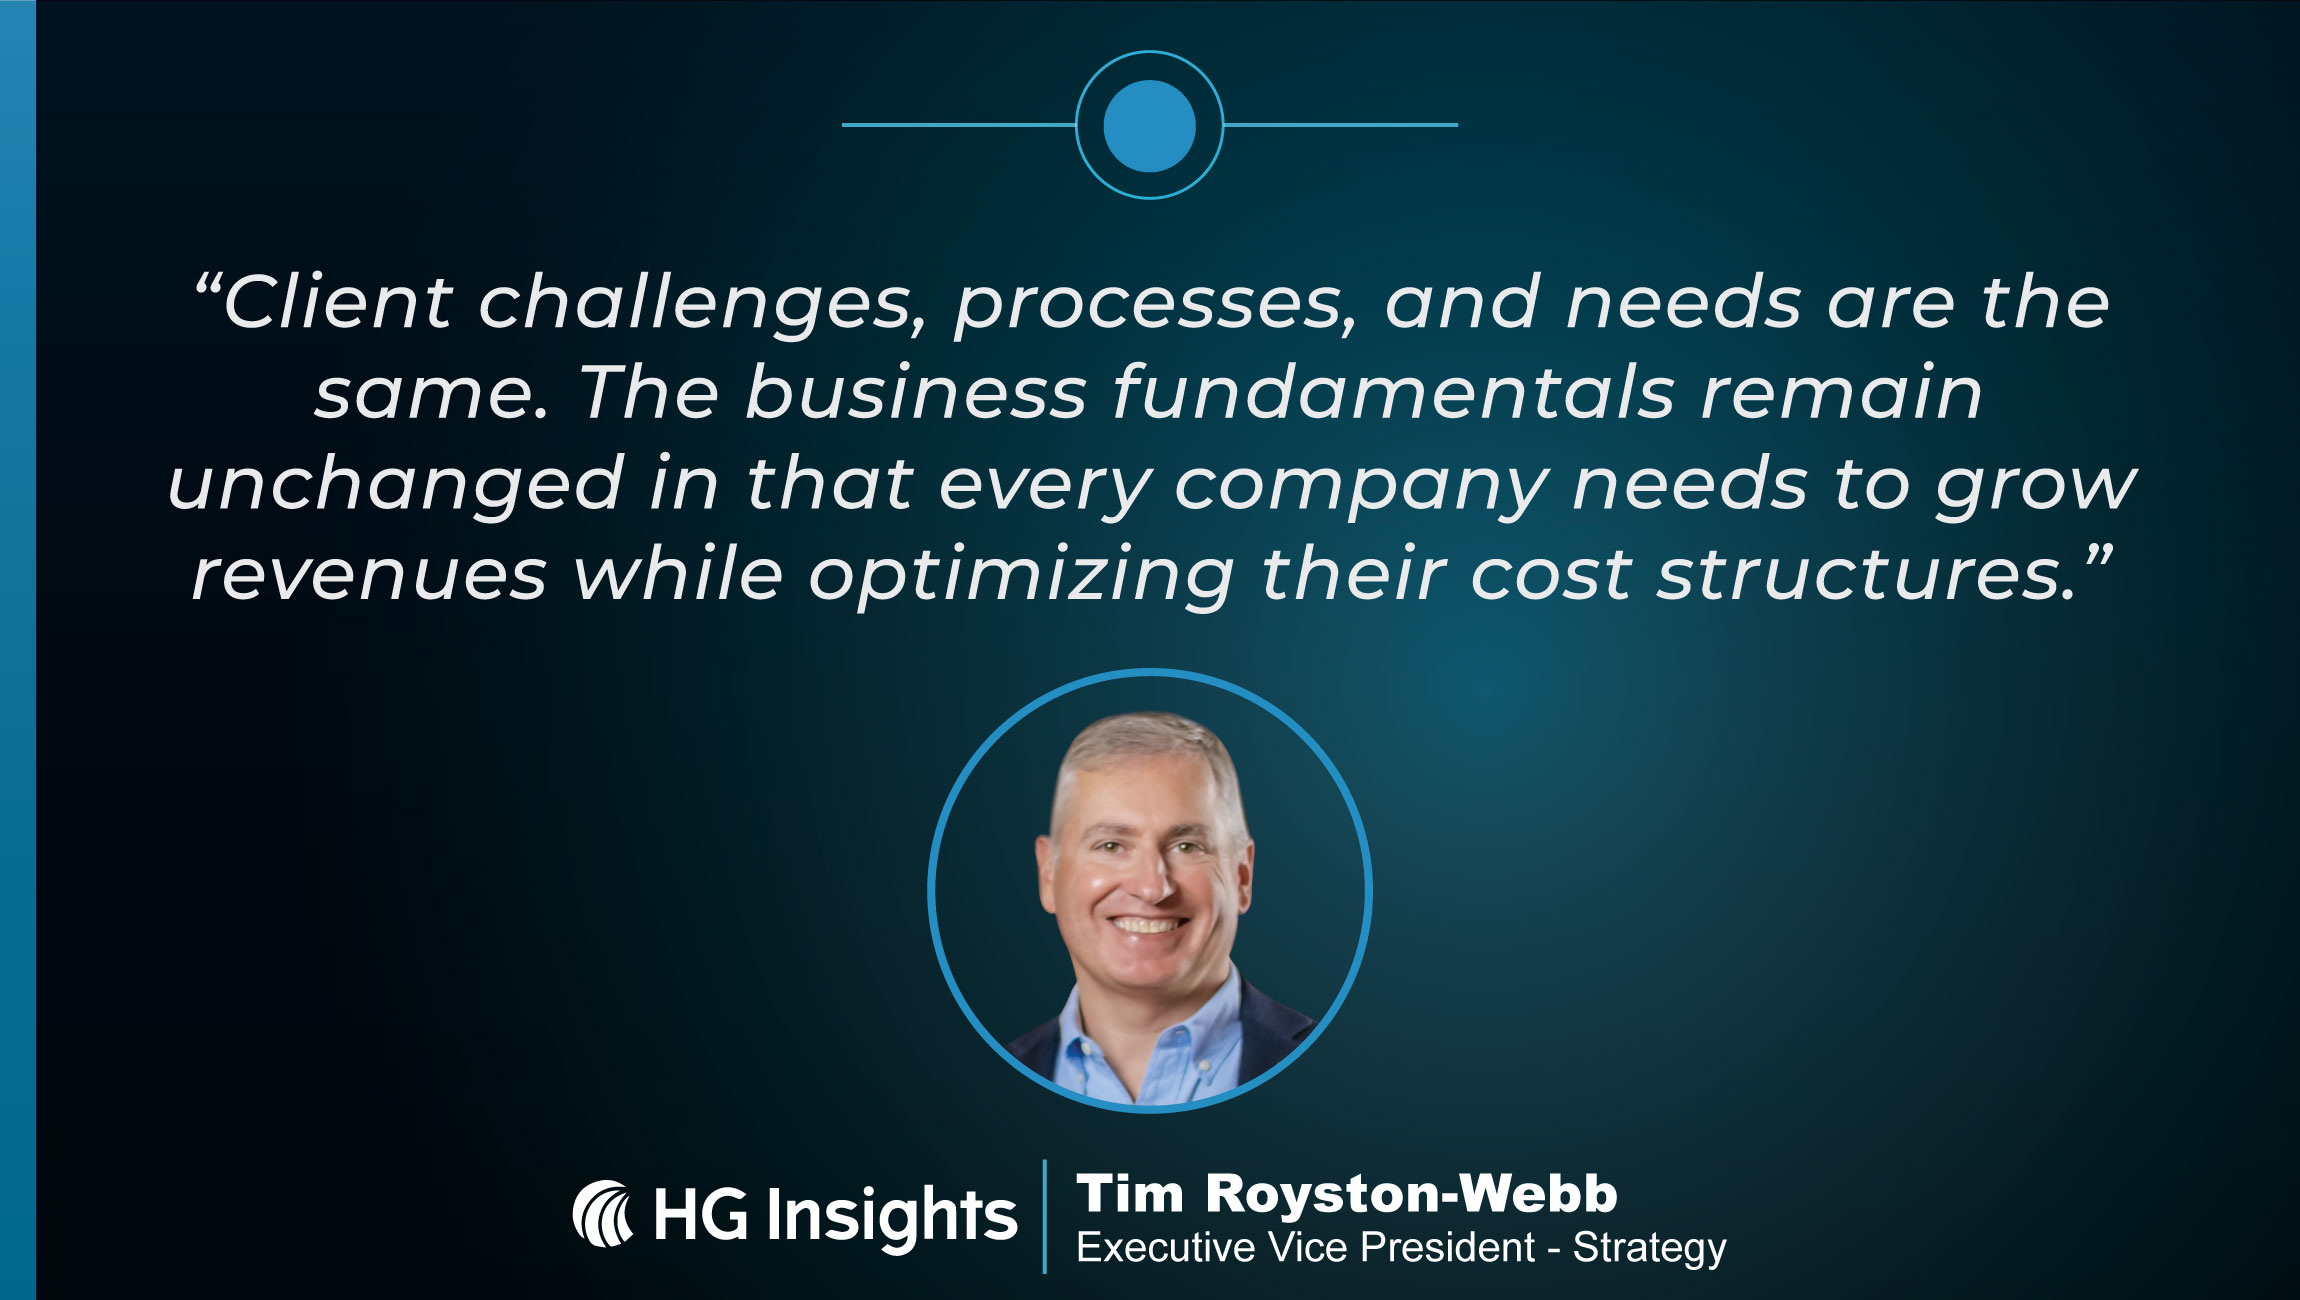 TechBytes with Tim Royston-Webb, Executive Vice President - Strategy at HG Insights